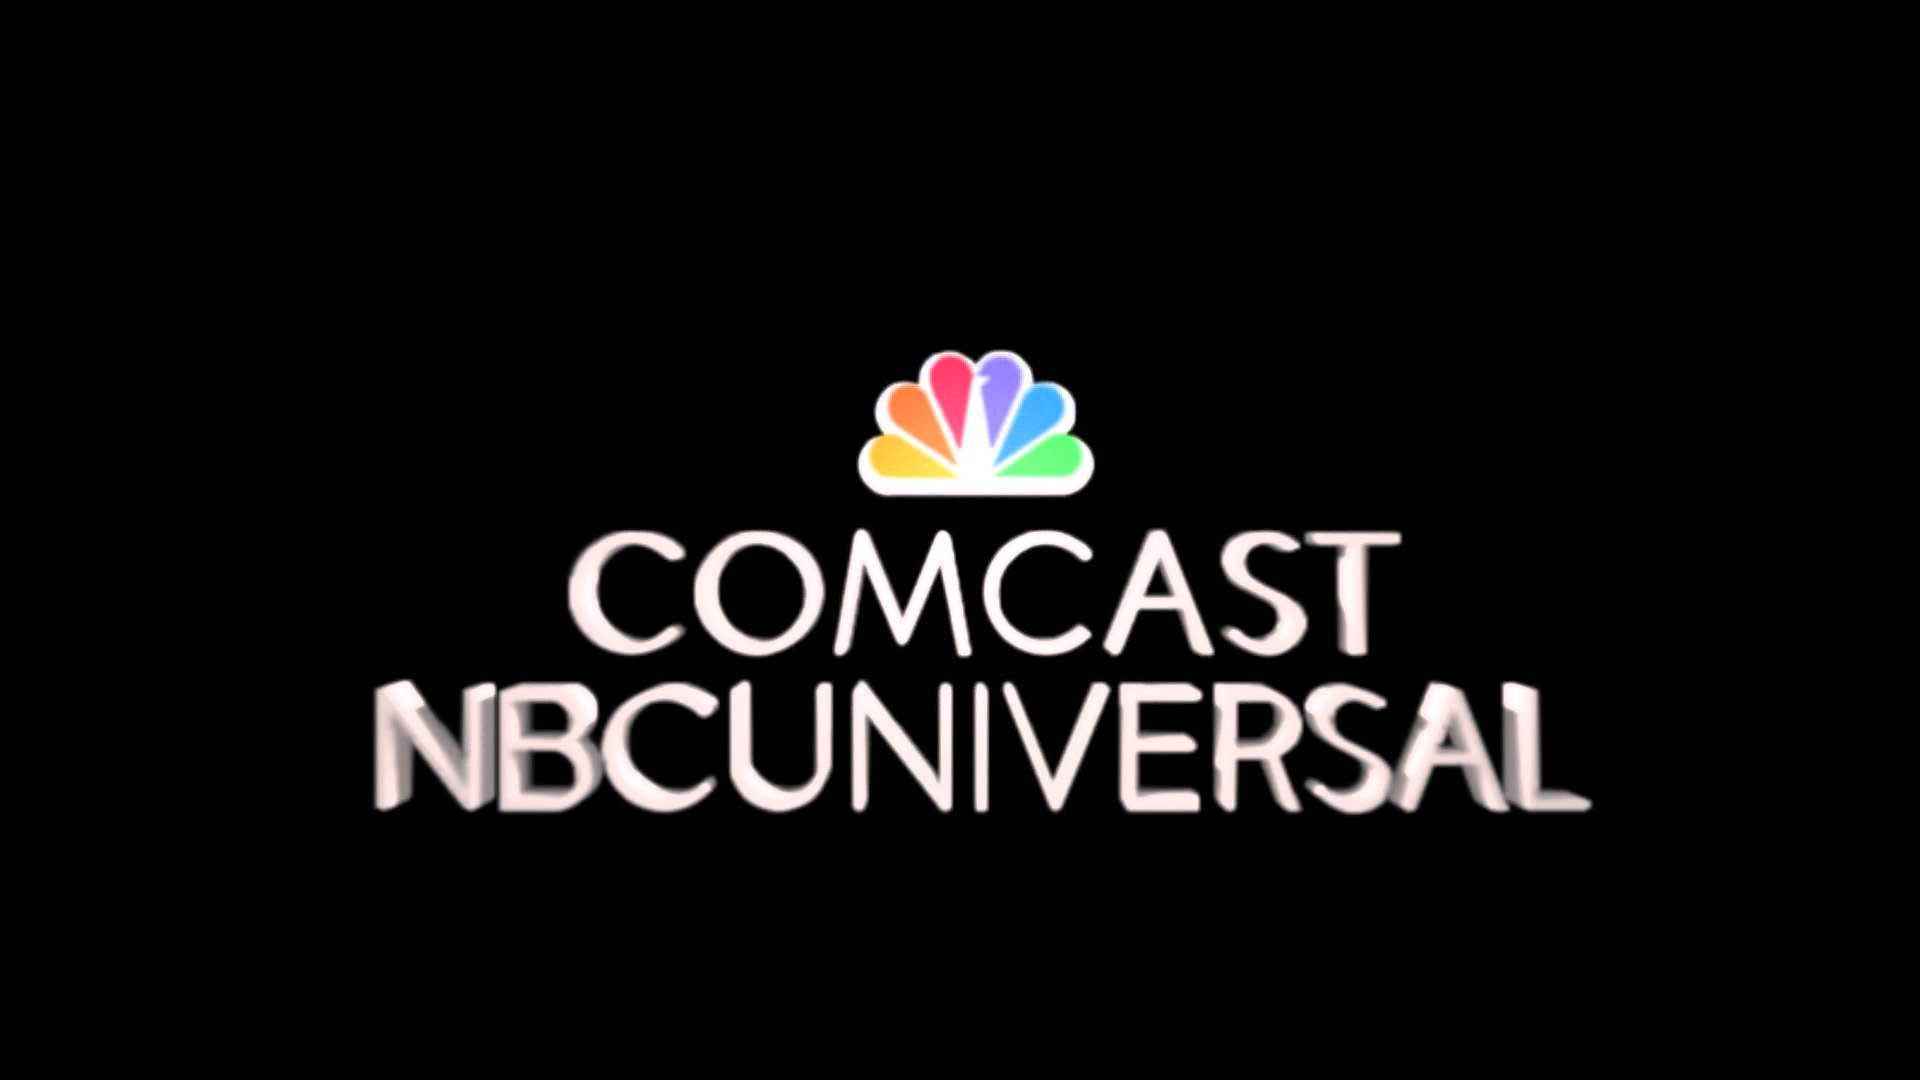 10.Comcast NBCUniversal